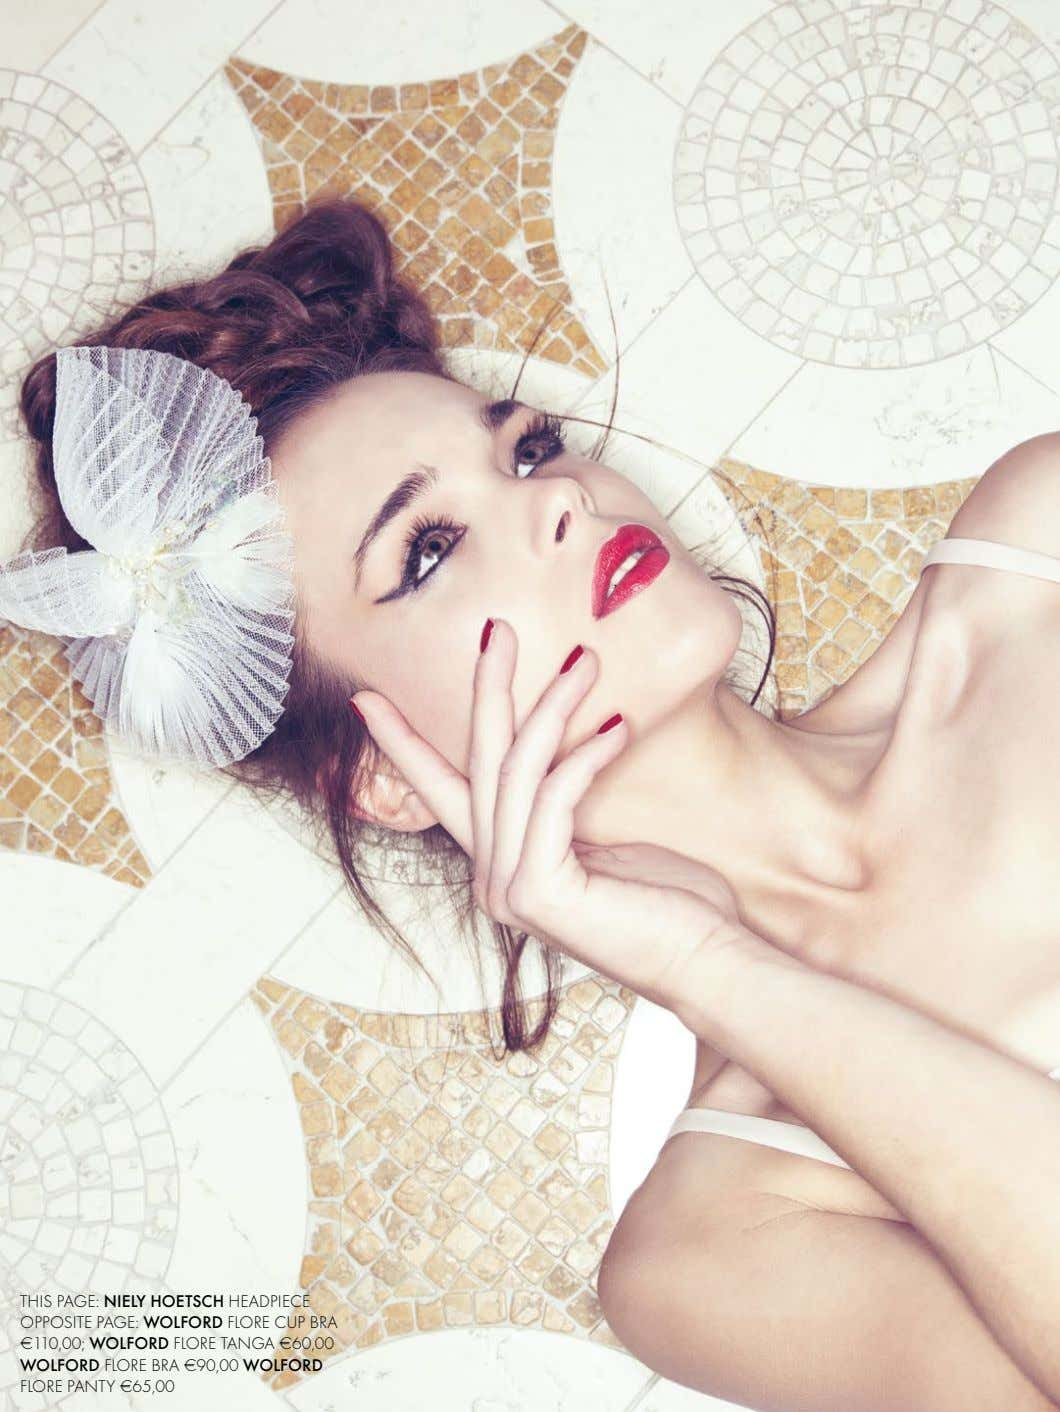 THIS PAGE: NIELY HOETSCH HEADPIECE OPPOSITE PAGE: WOLFORD FLORE CUP BRA €110,00; WOLFORD FLORE TANGA